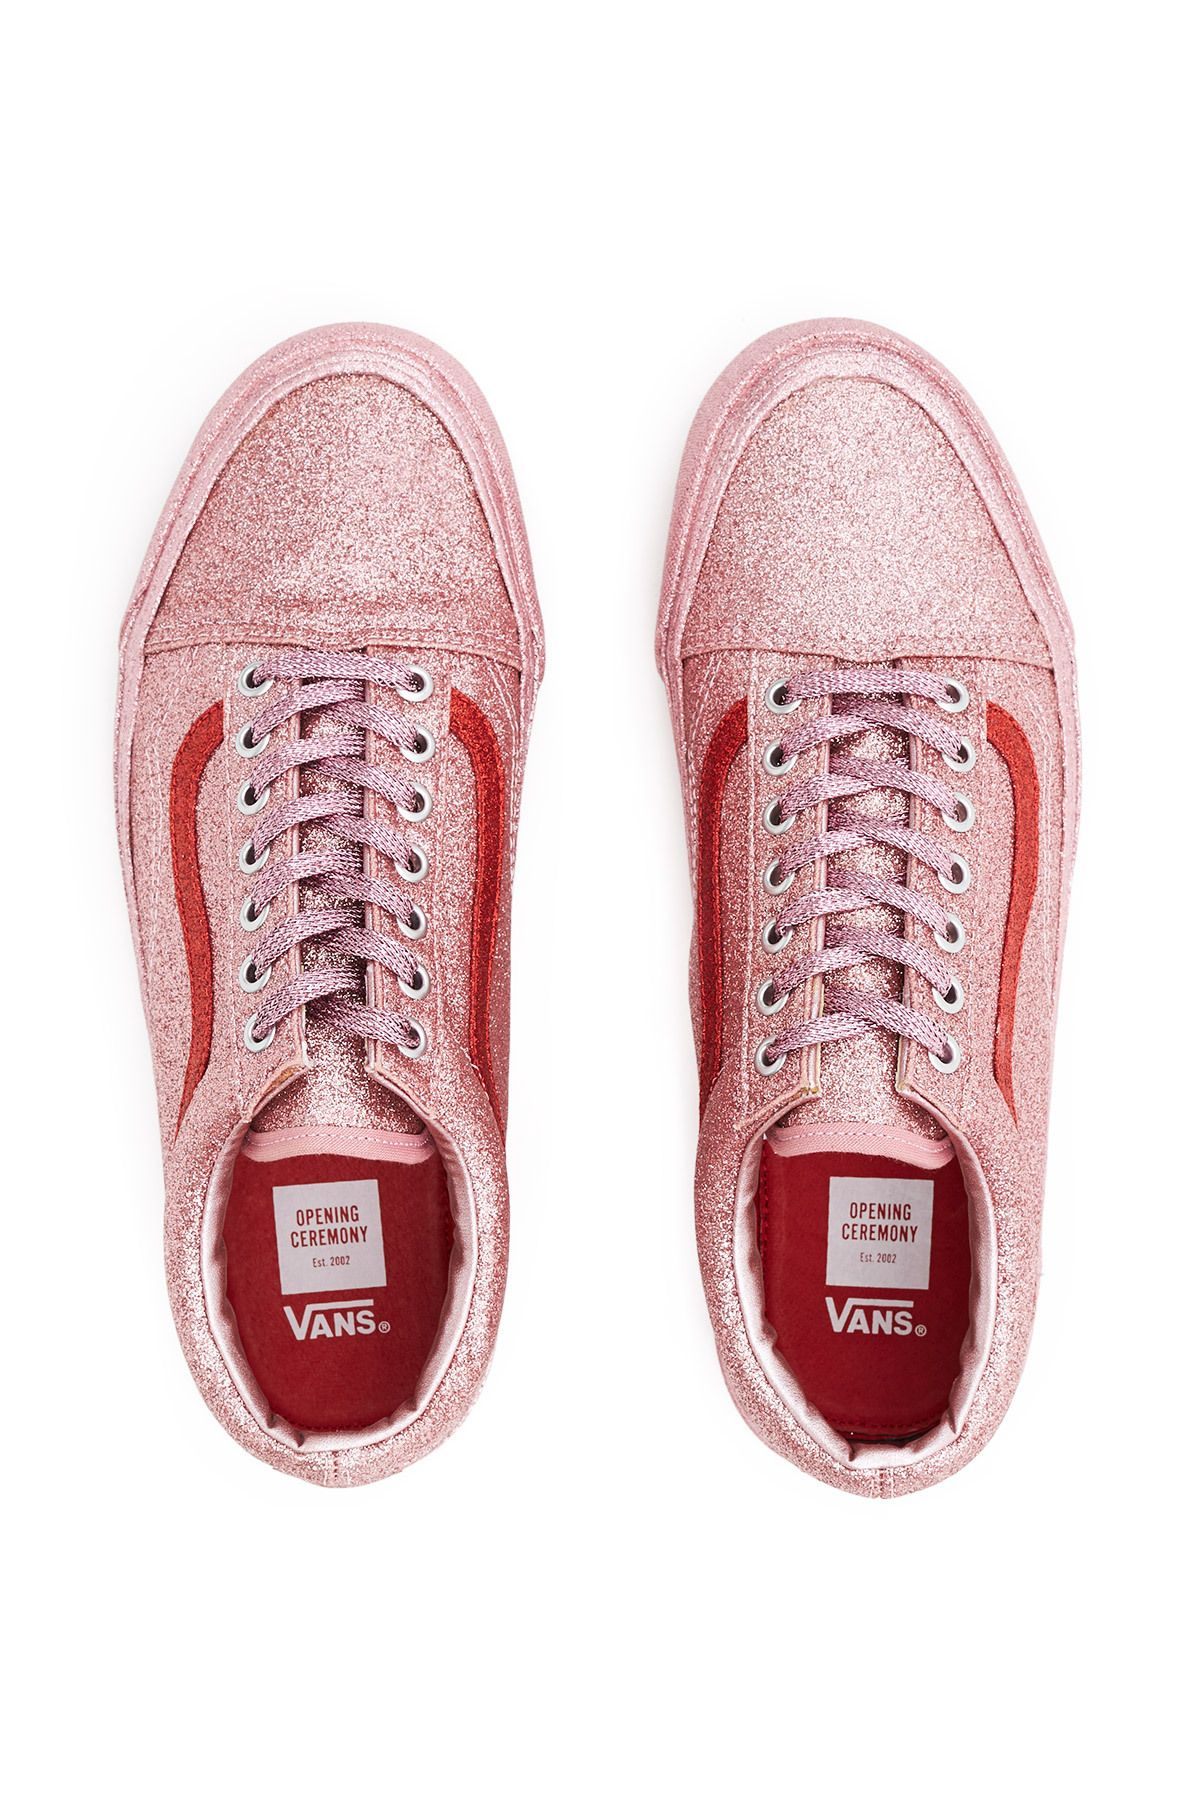 Vans for Opening Ceremony, Glitter OG Old Skool LX Sneakers